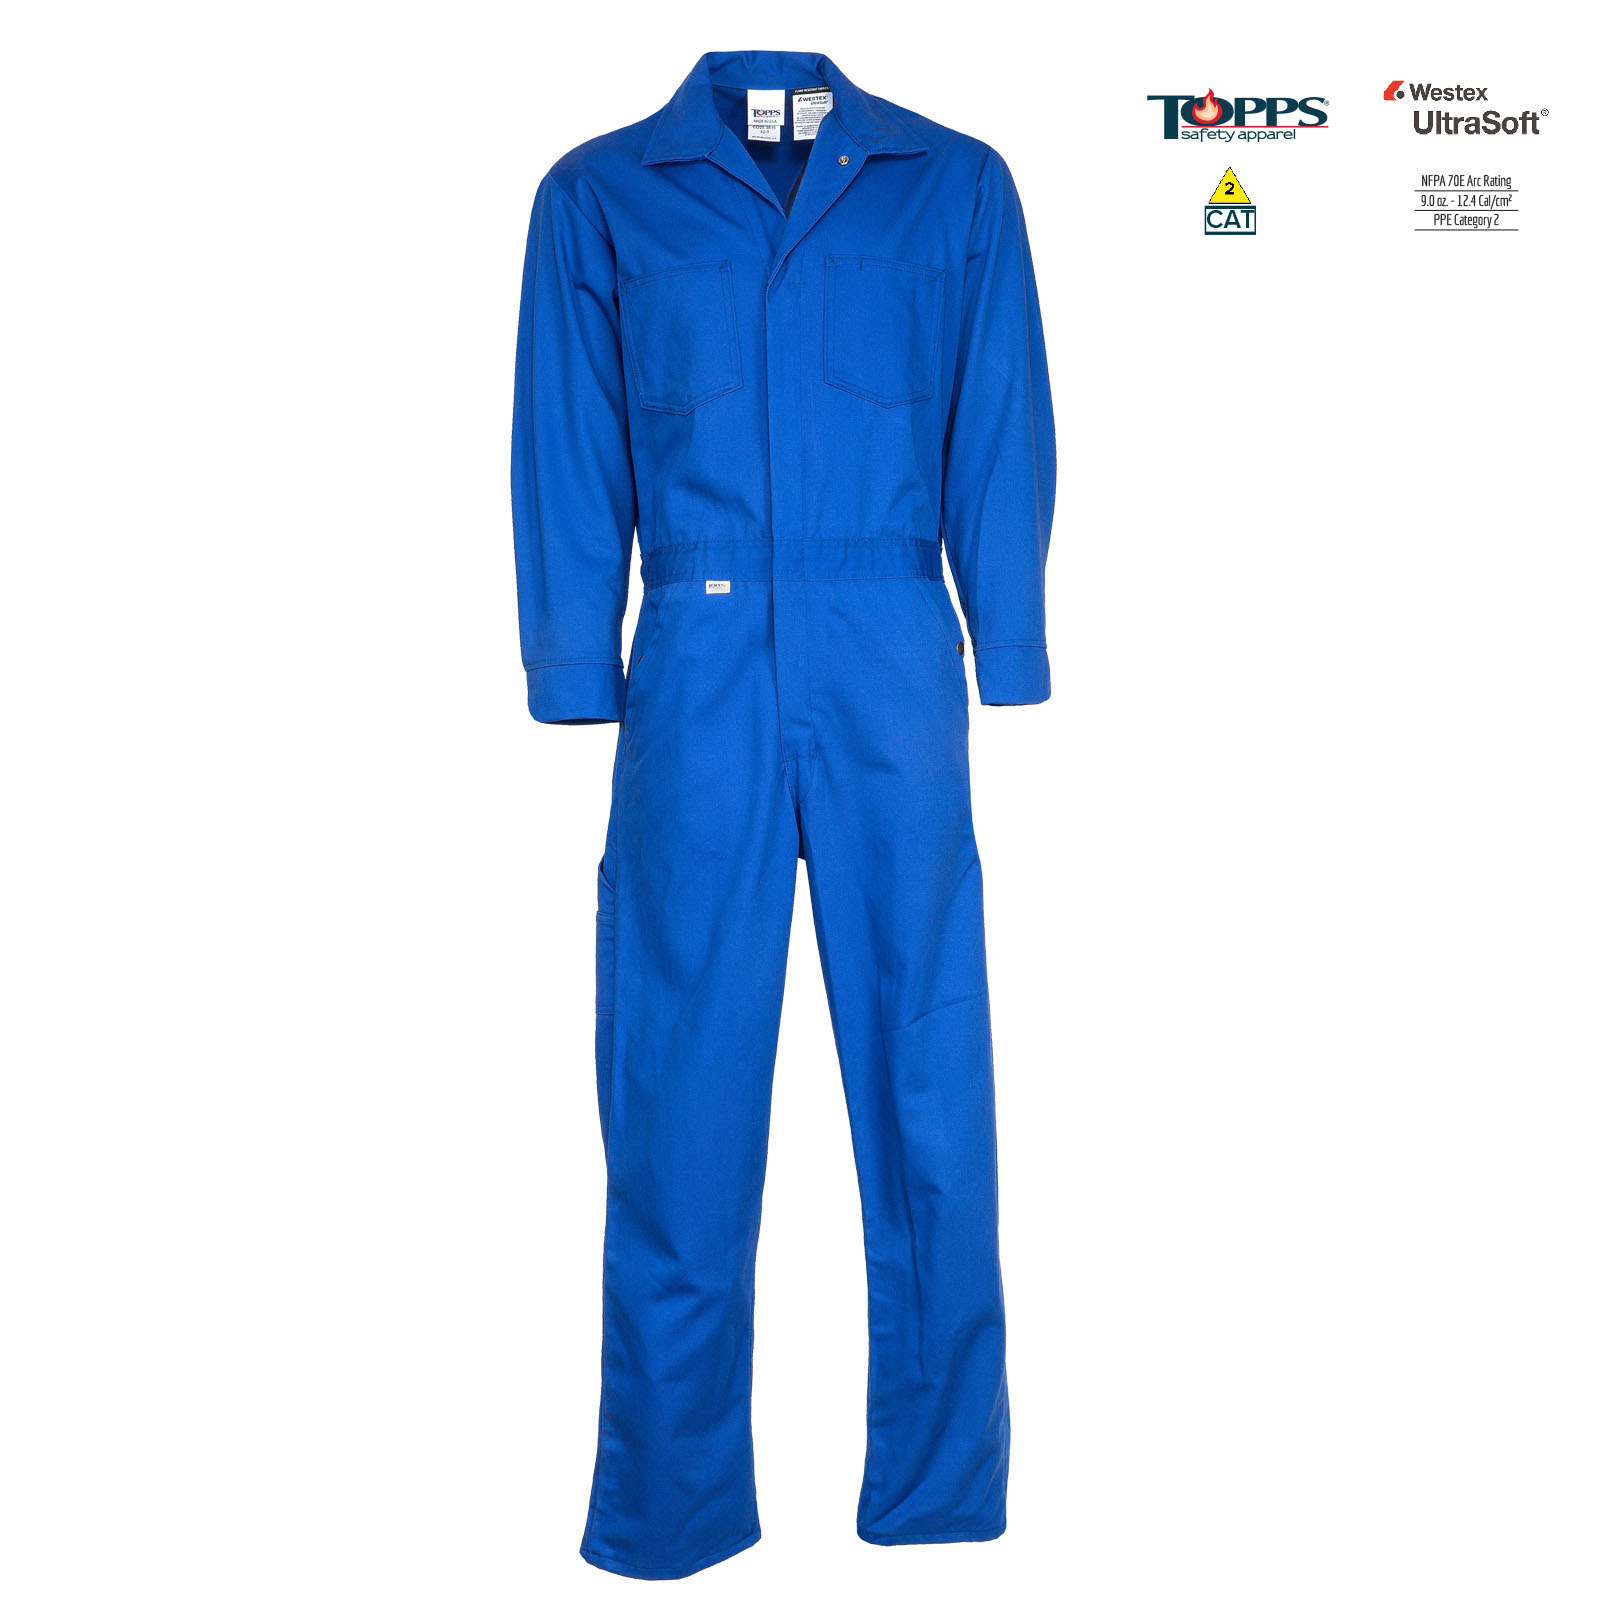 Deluxe 9 ounce UltraSoft® by Westex 88/12 Cotton/Nylon Blend FR Coverall-TOPPS